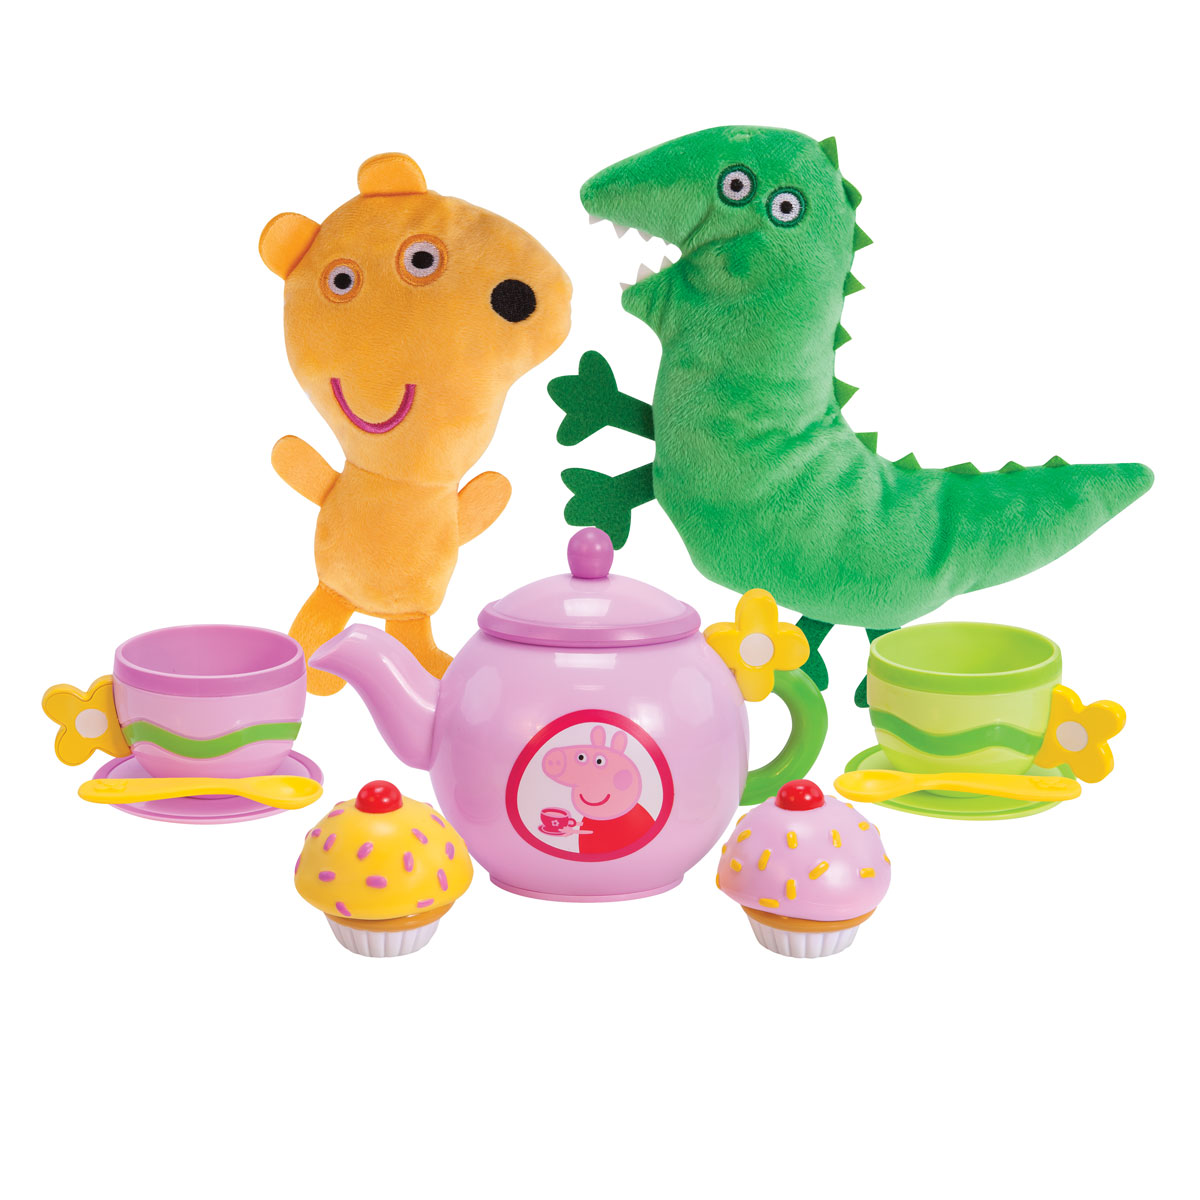 Peppa Pig Tea Party Set